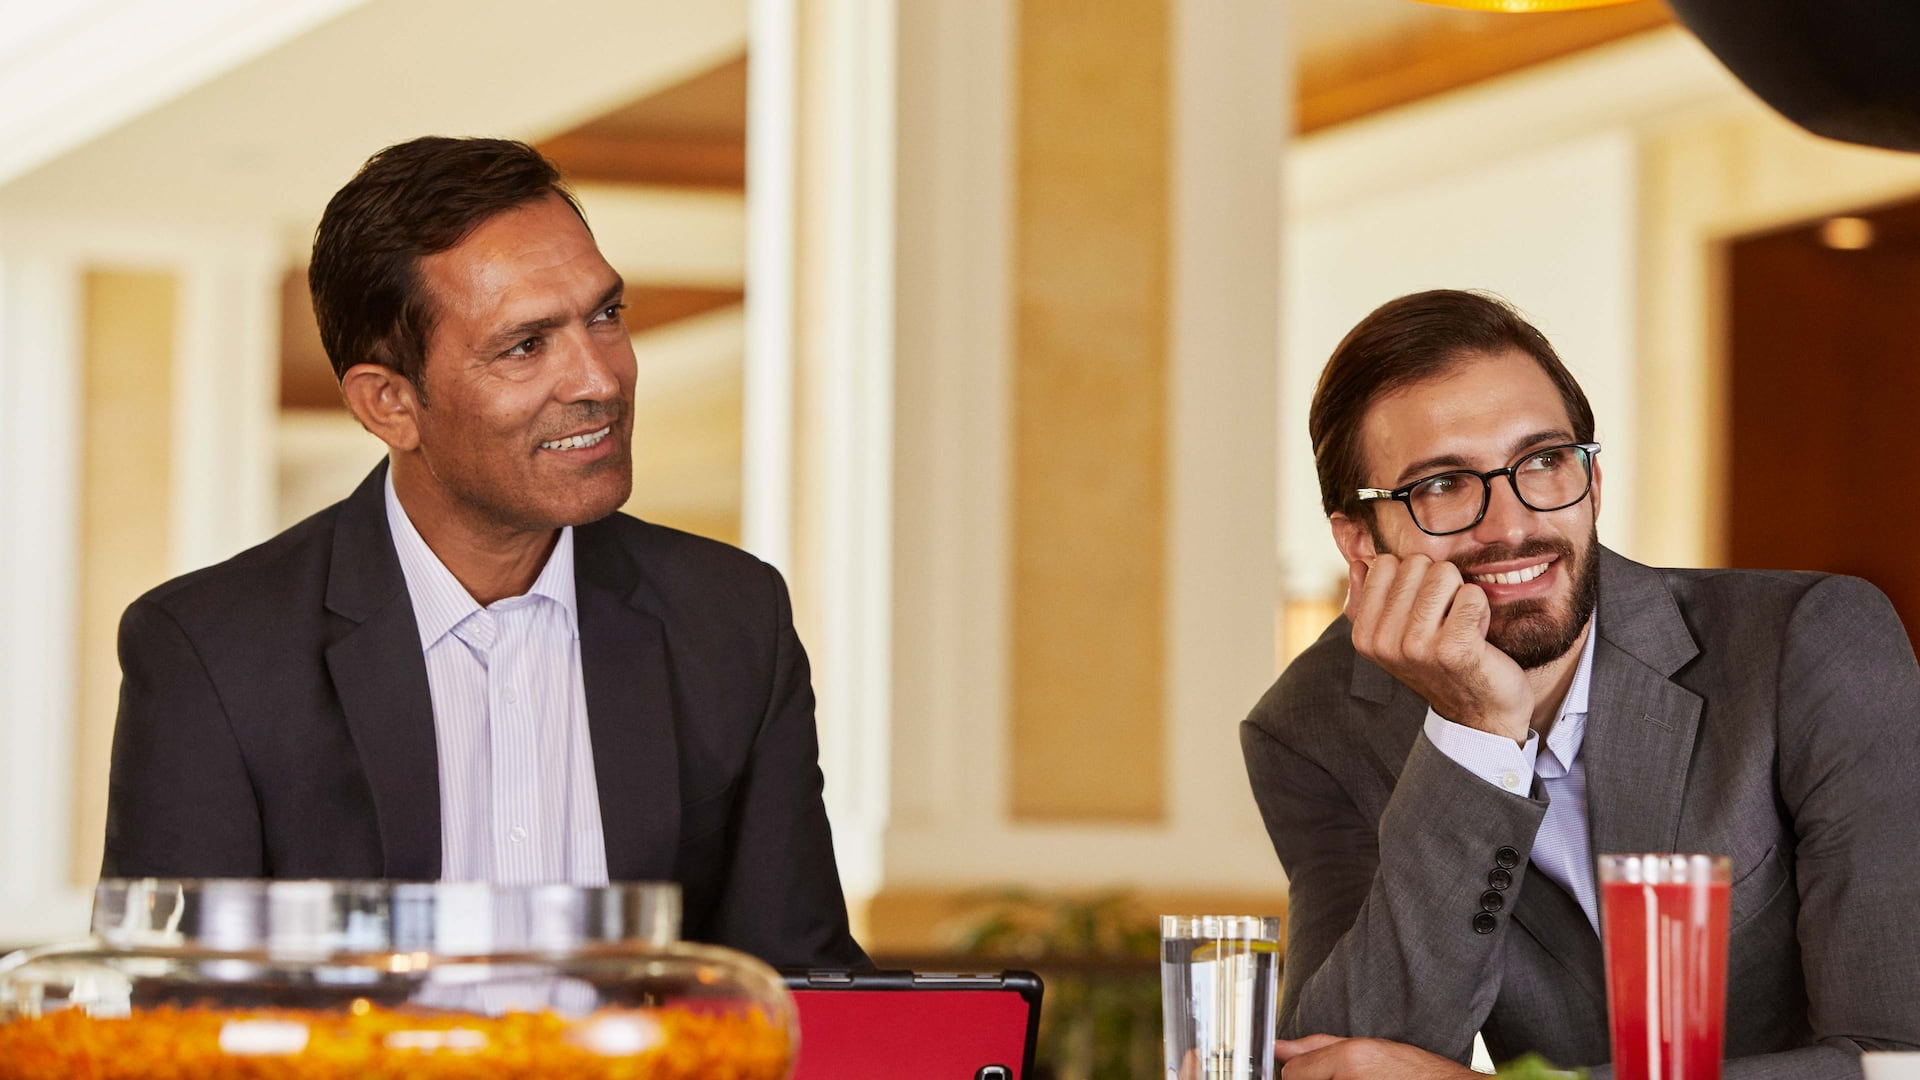 Business men at a meeting